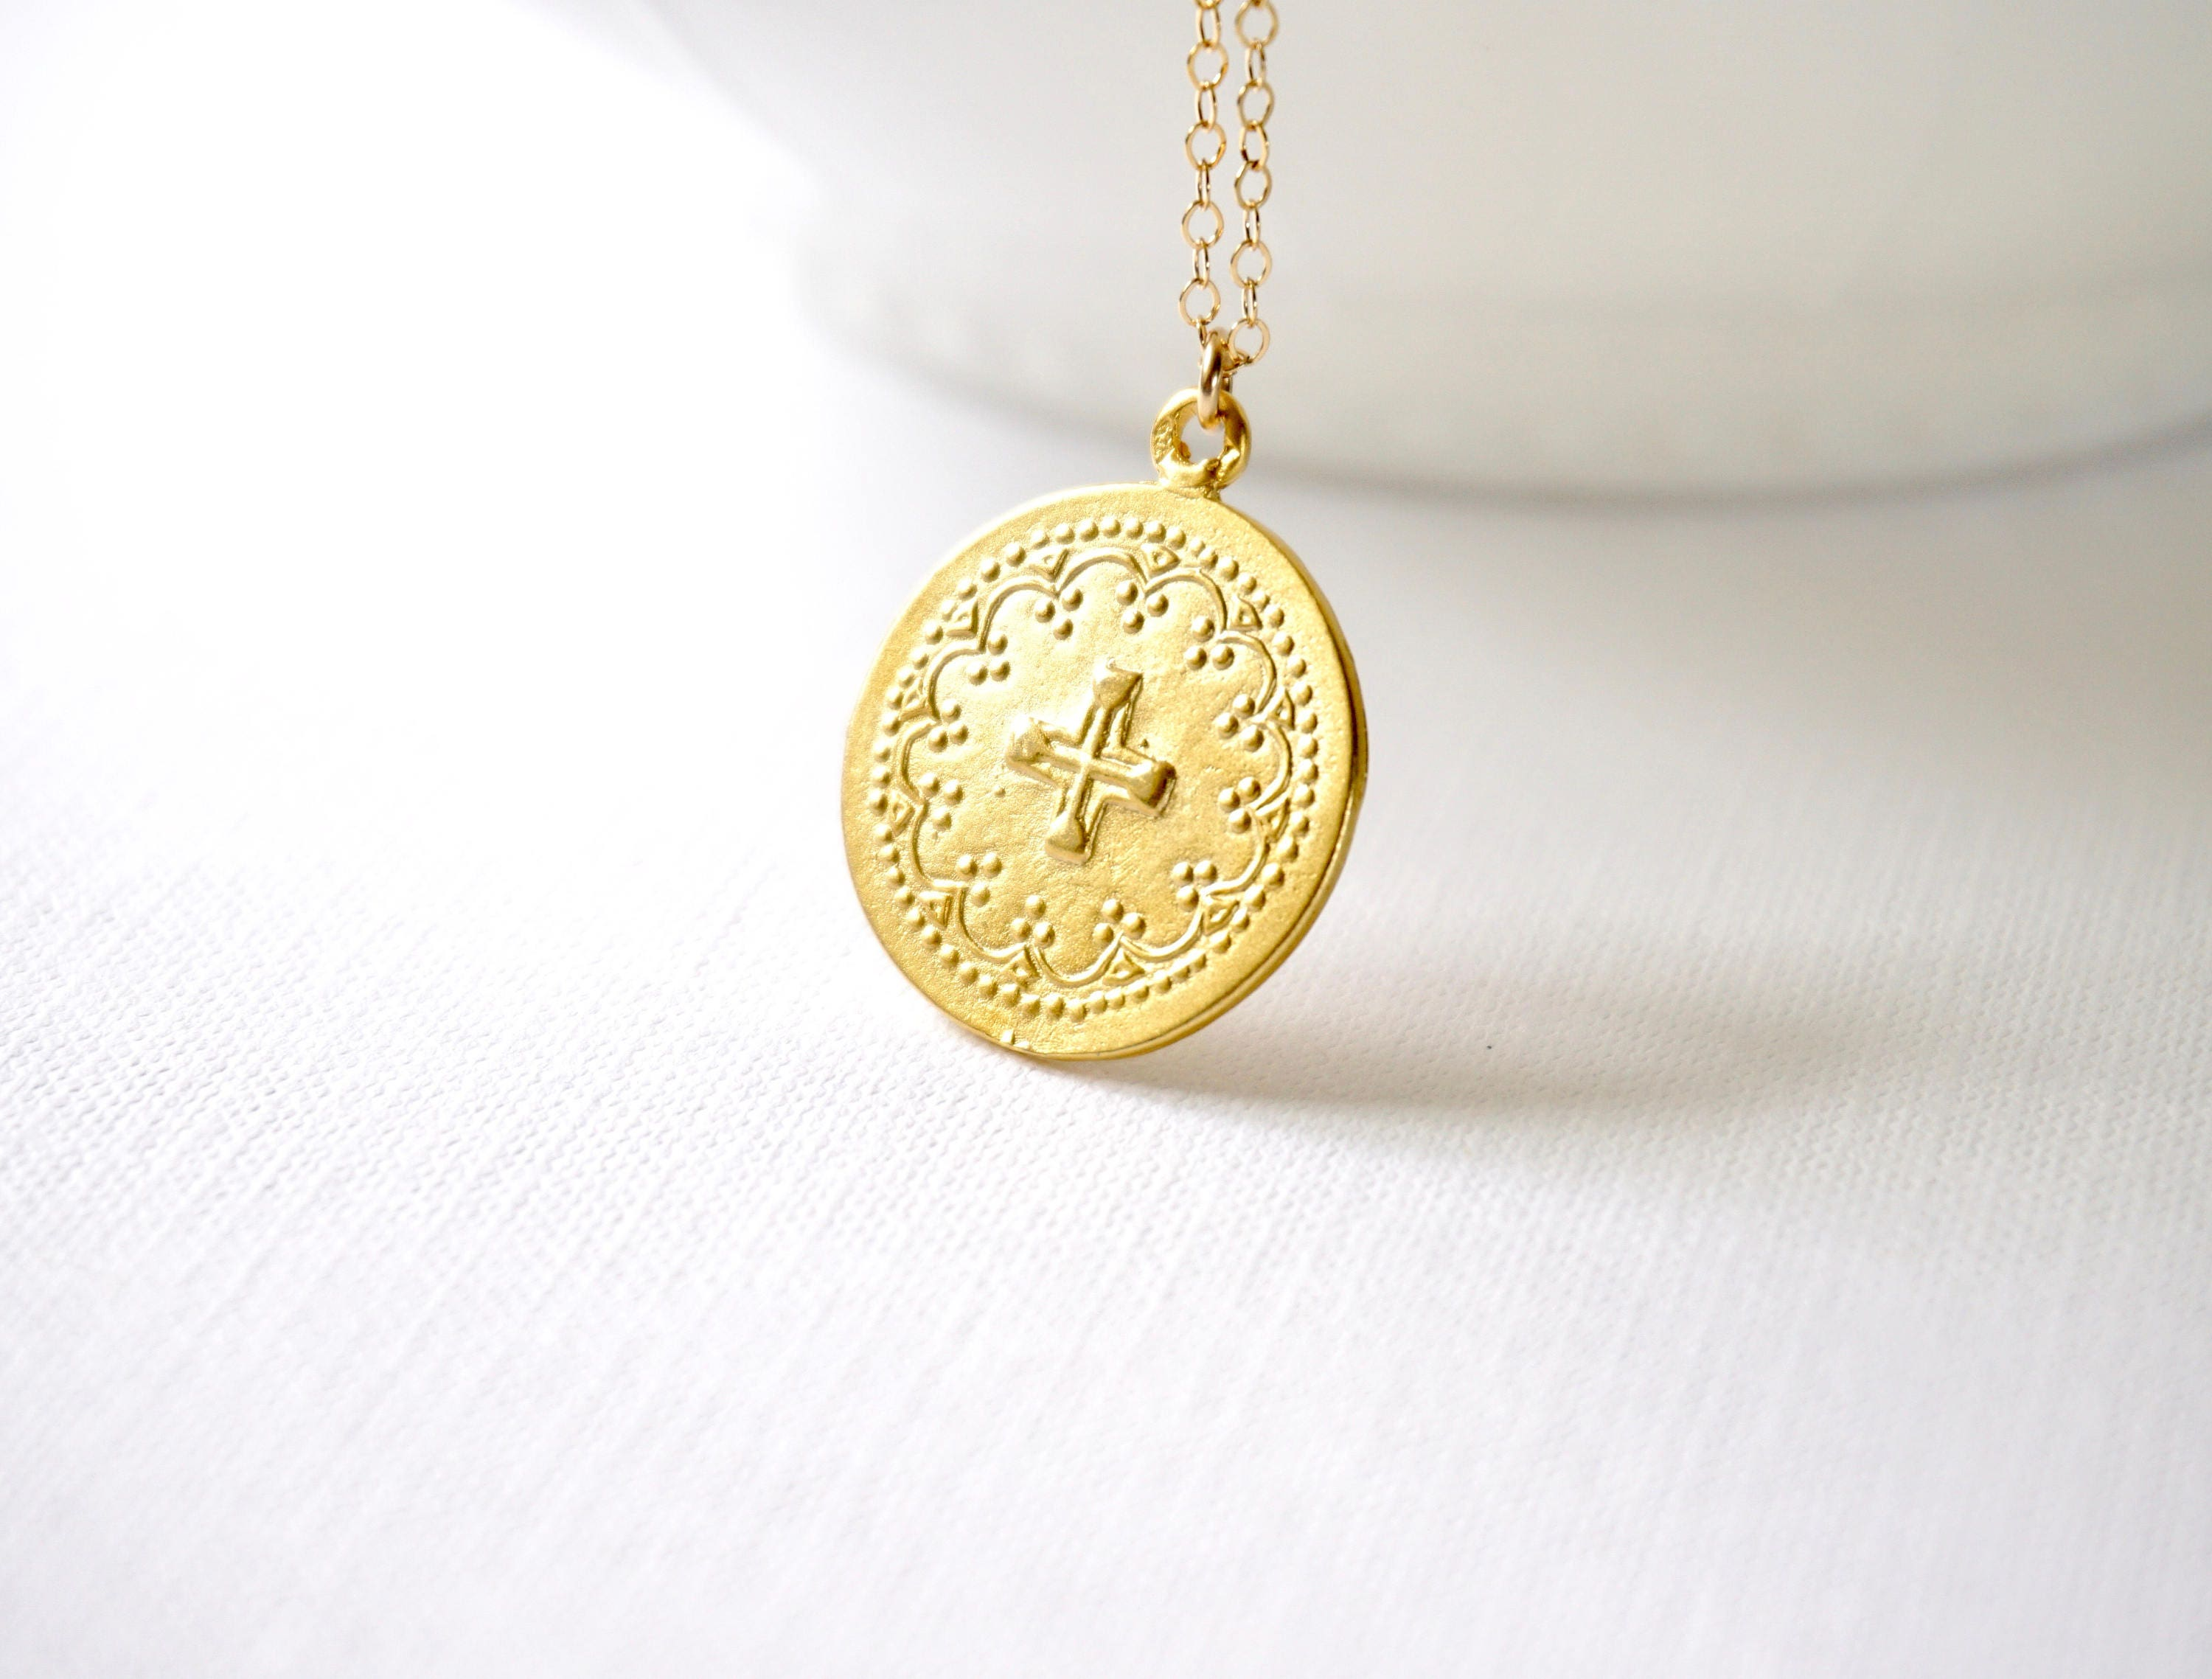 bunny gold products one rabbit supplies connector charm in made diameter raw the victorian brass stamping pendant large medallion usa ornament